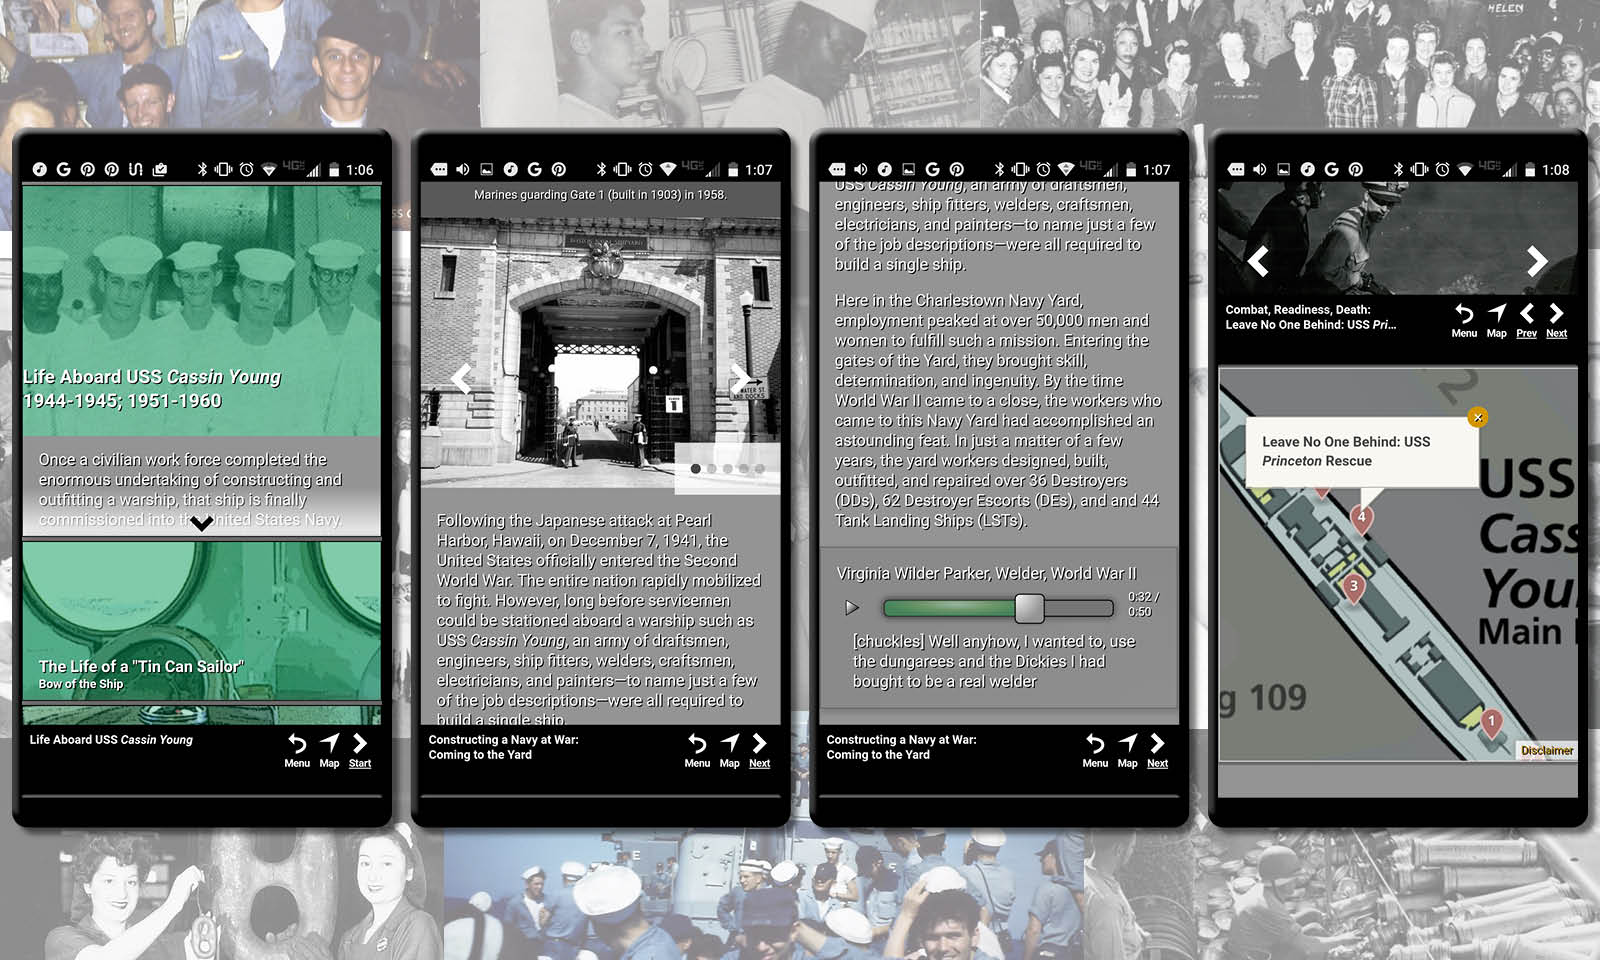 Collection of archival images from the app with four screen shots of the app in use.